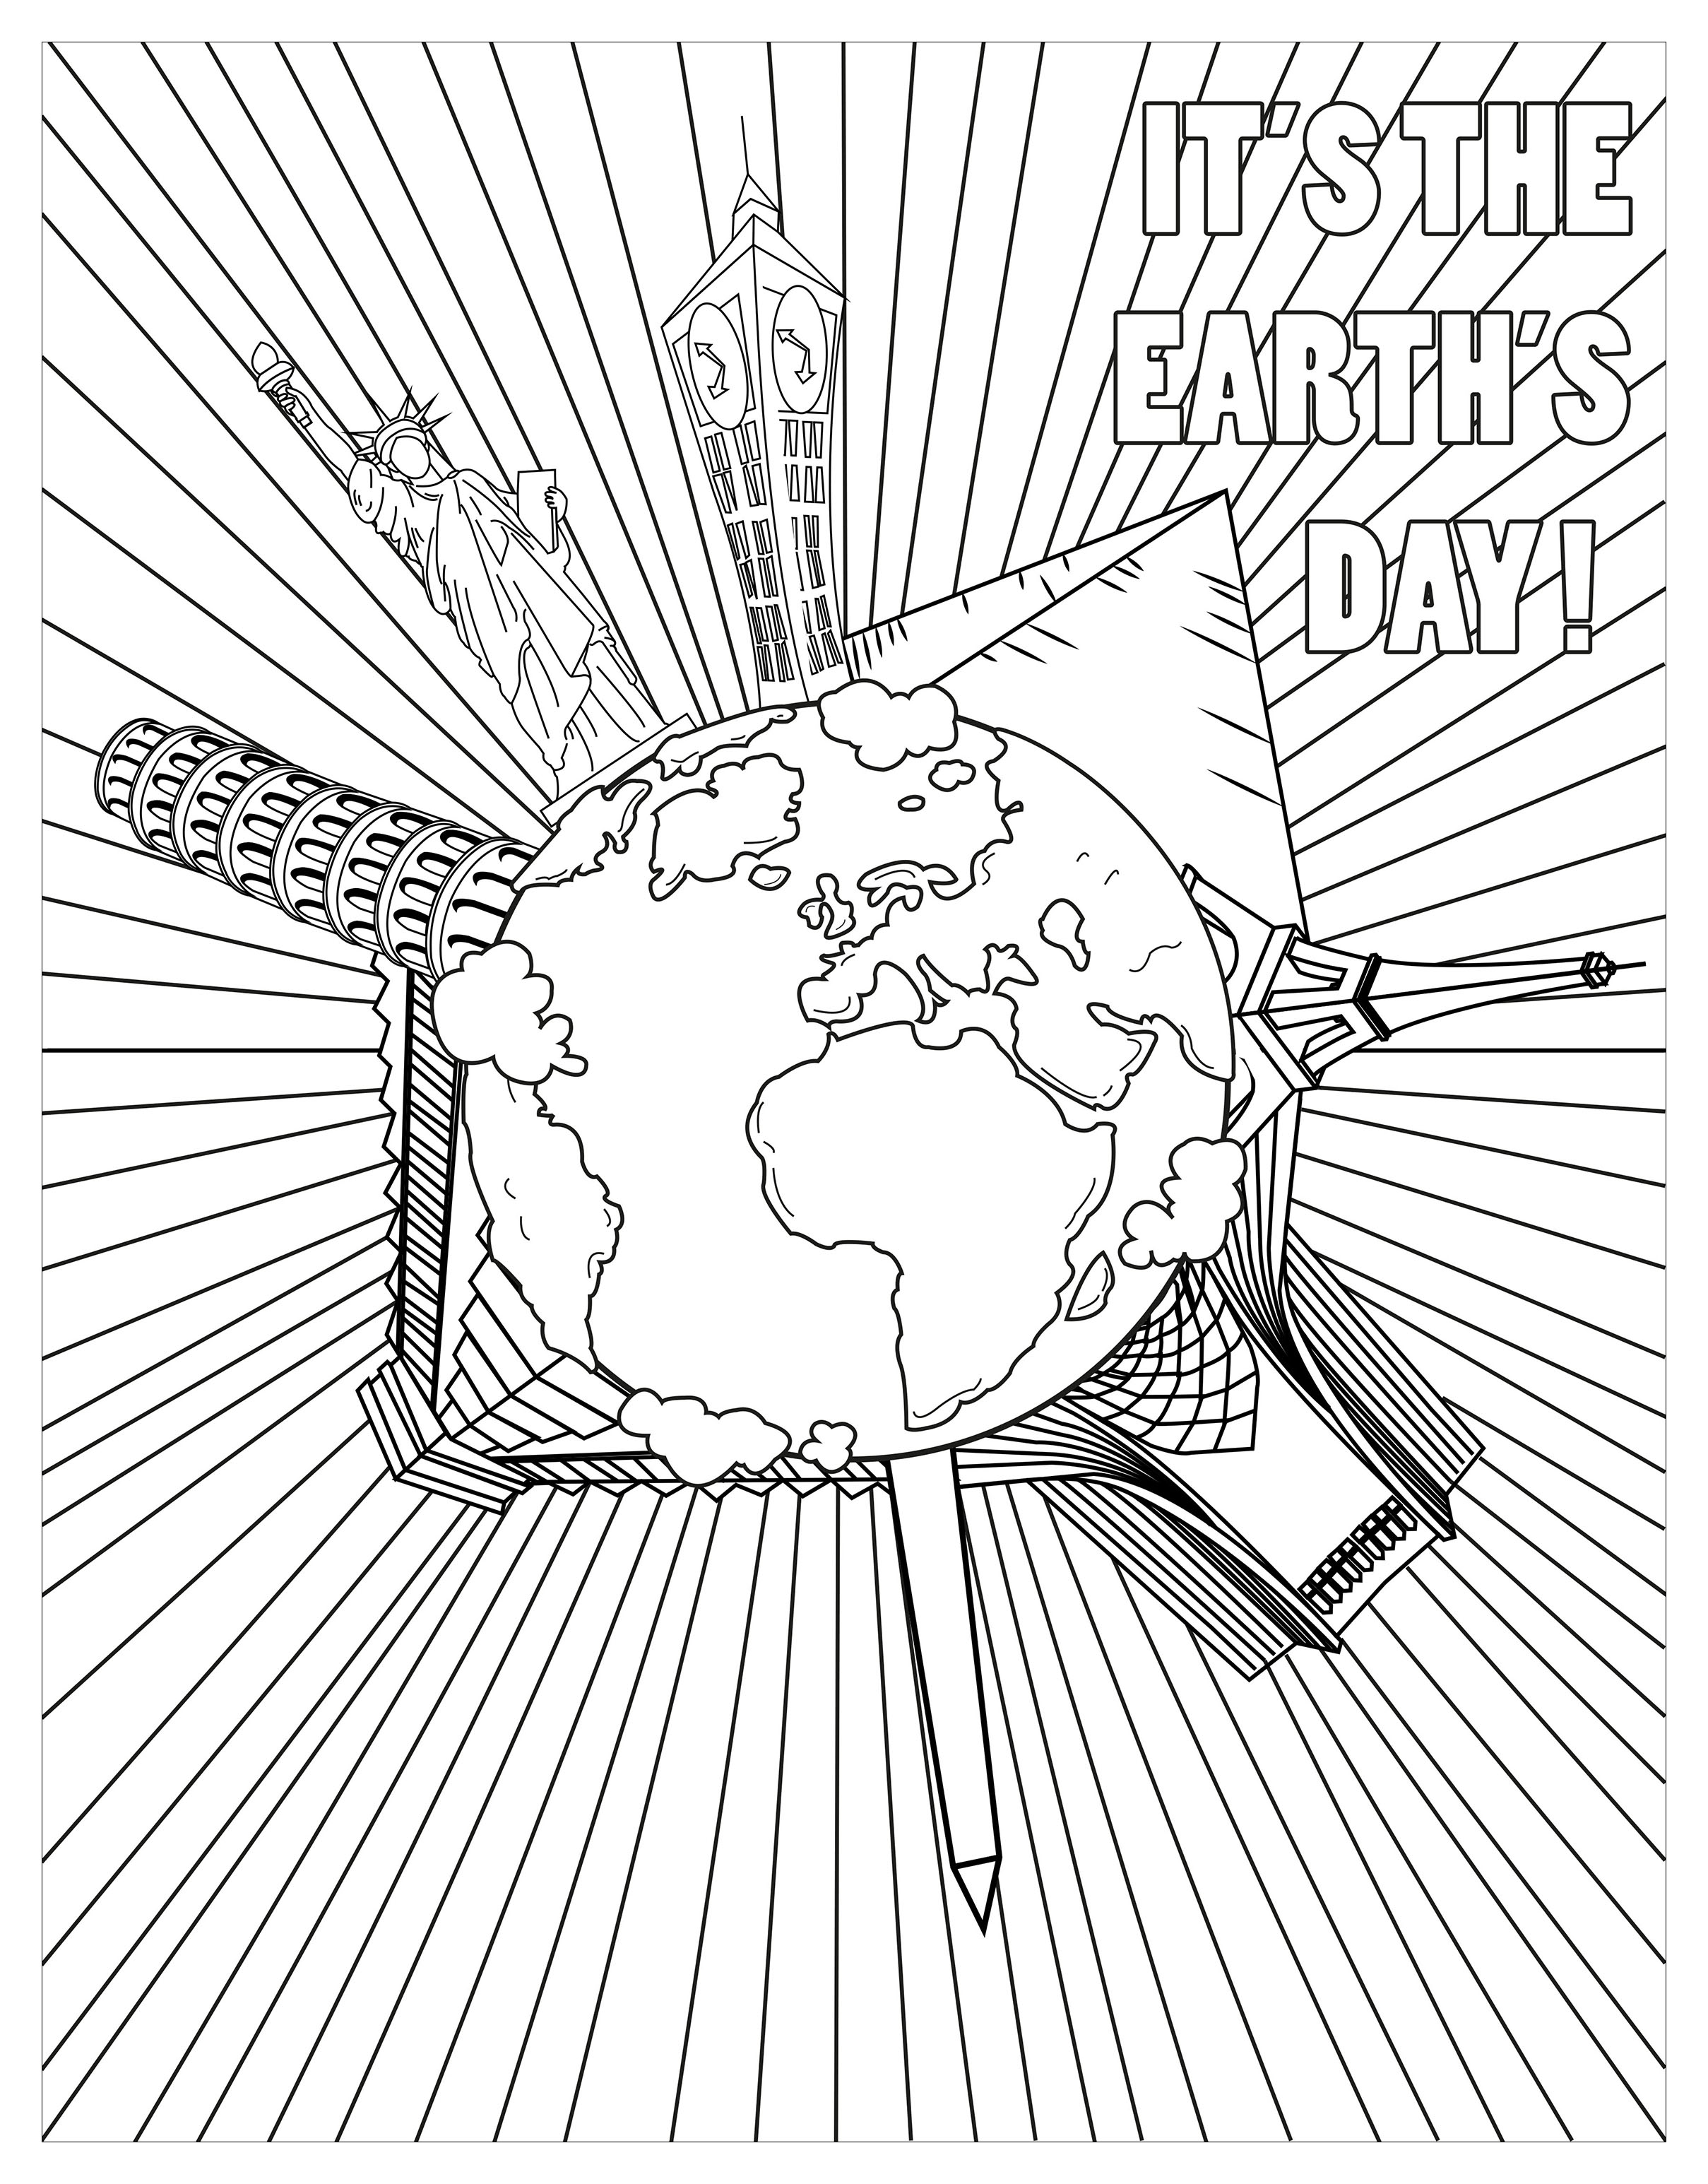 Coloring Page For The Earths Day